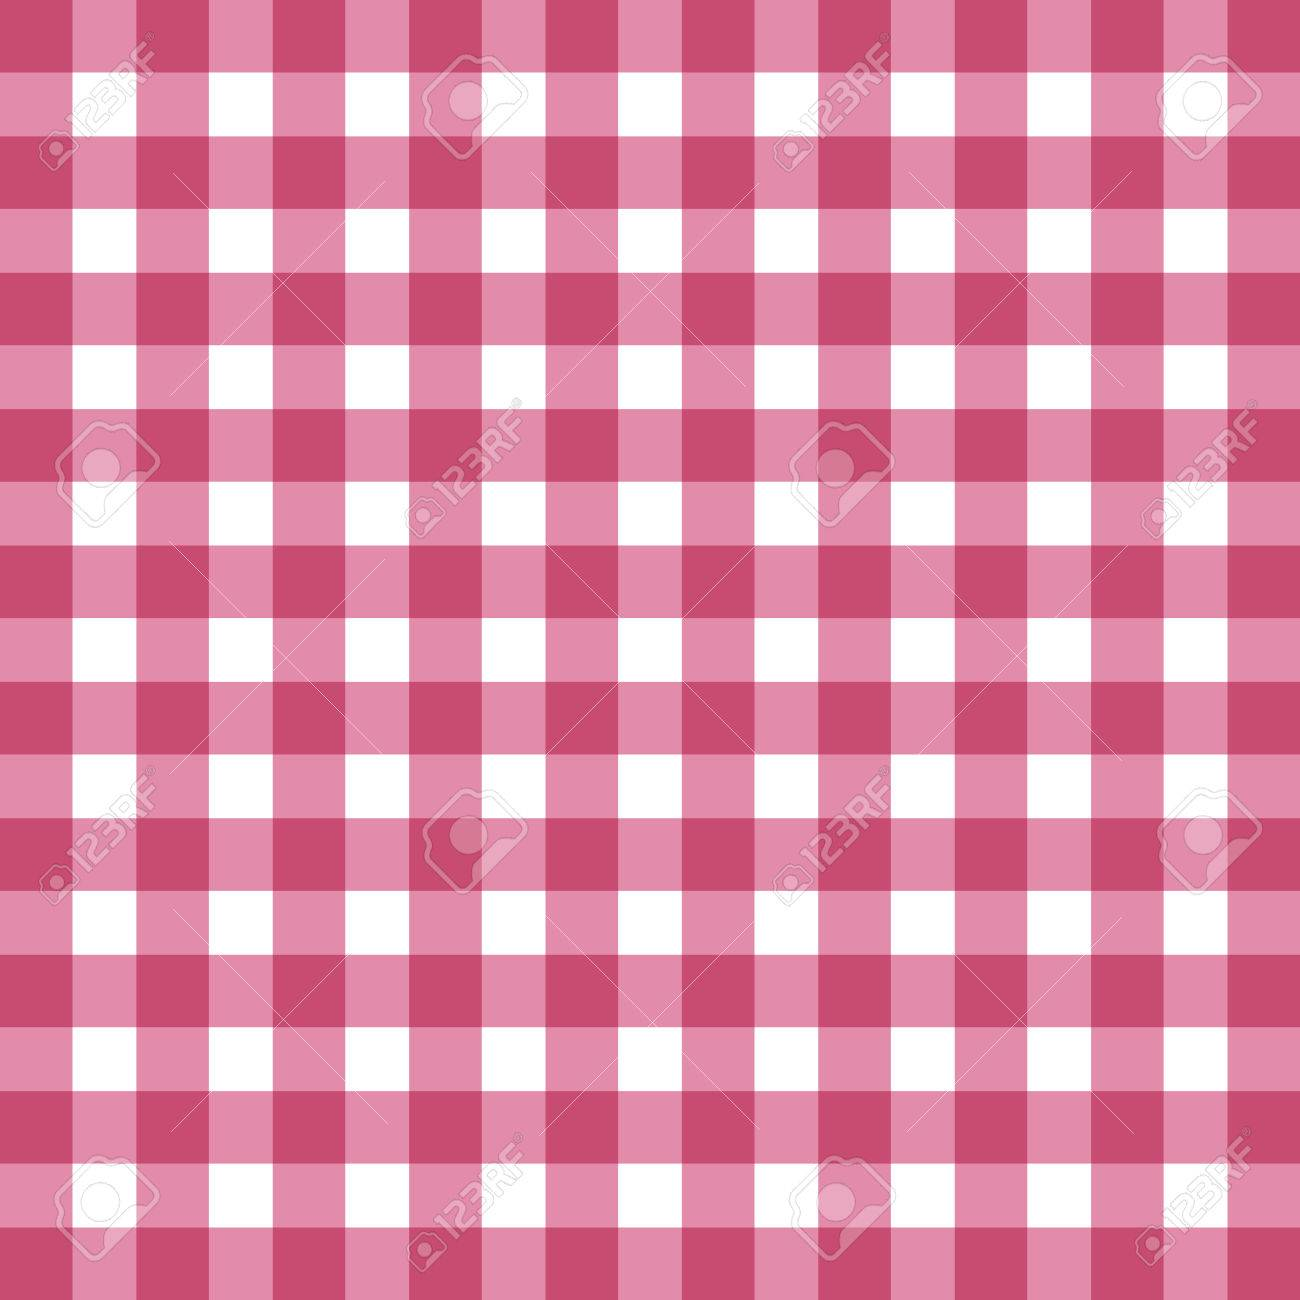 Flat Easy Tilable Red And White Gingham Repeat Pattern Print Seamless Background Wallpaper With